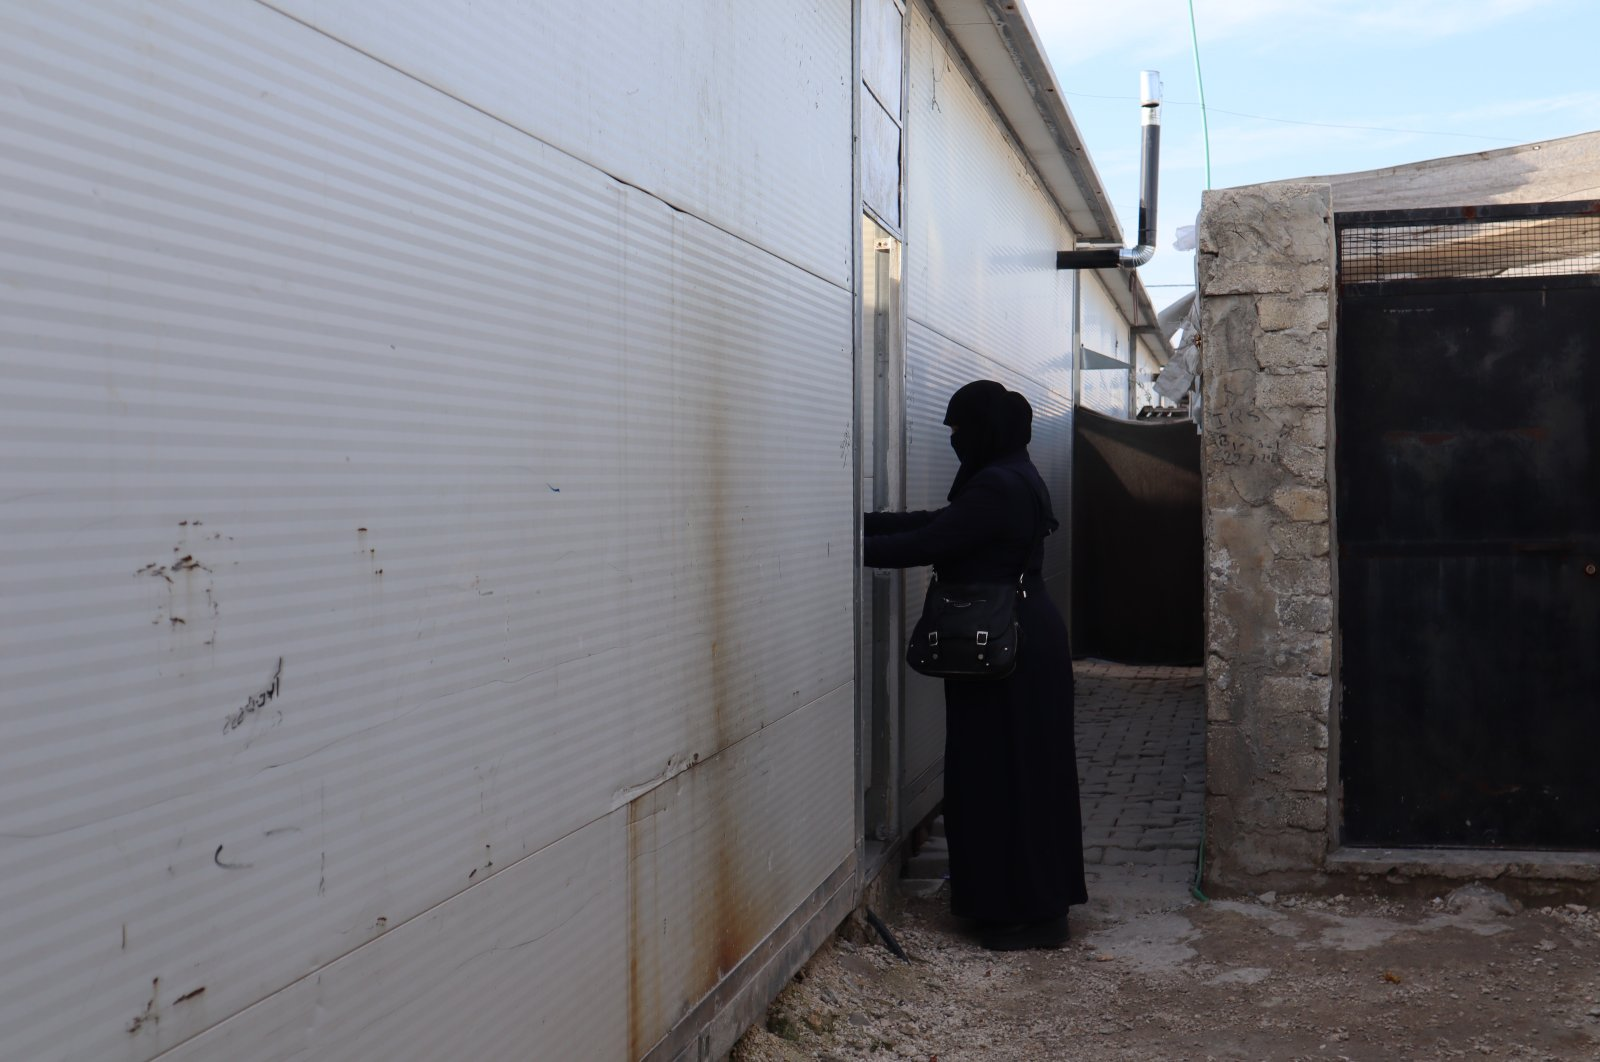 Muna Abban, a Syrian woman who fled the Bashar Assad regime's attacks in Aleppo, is seen in in front of her container house in Syria's Azaz, March 7, 2021 (AA Photo)